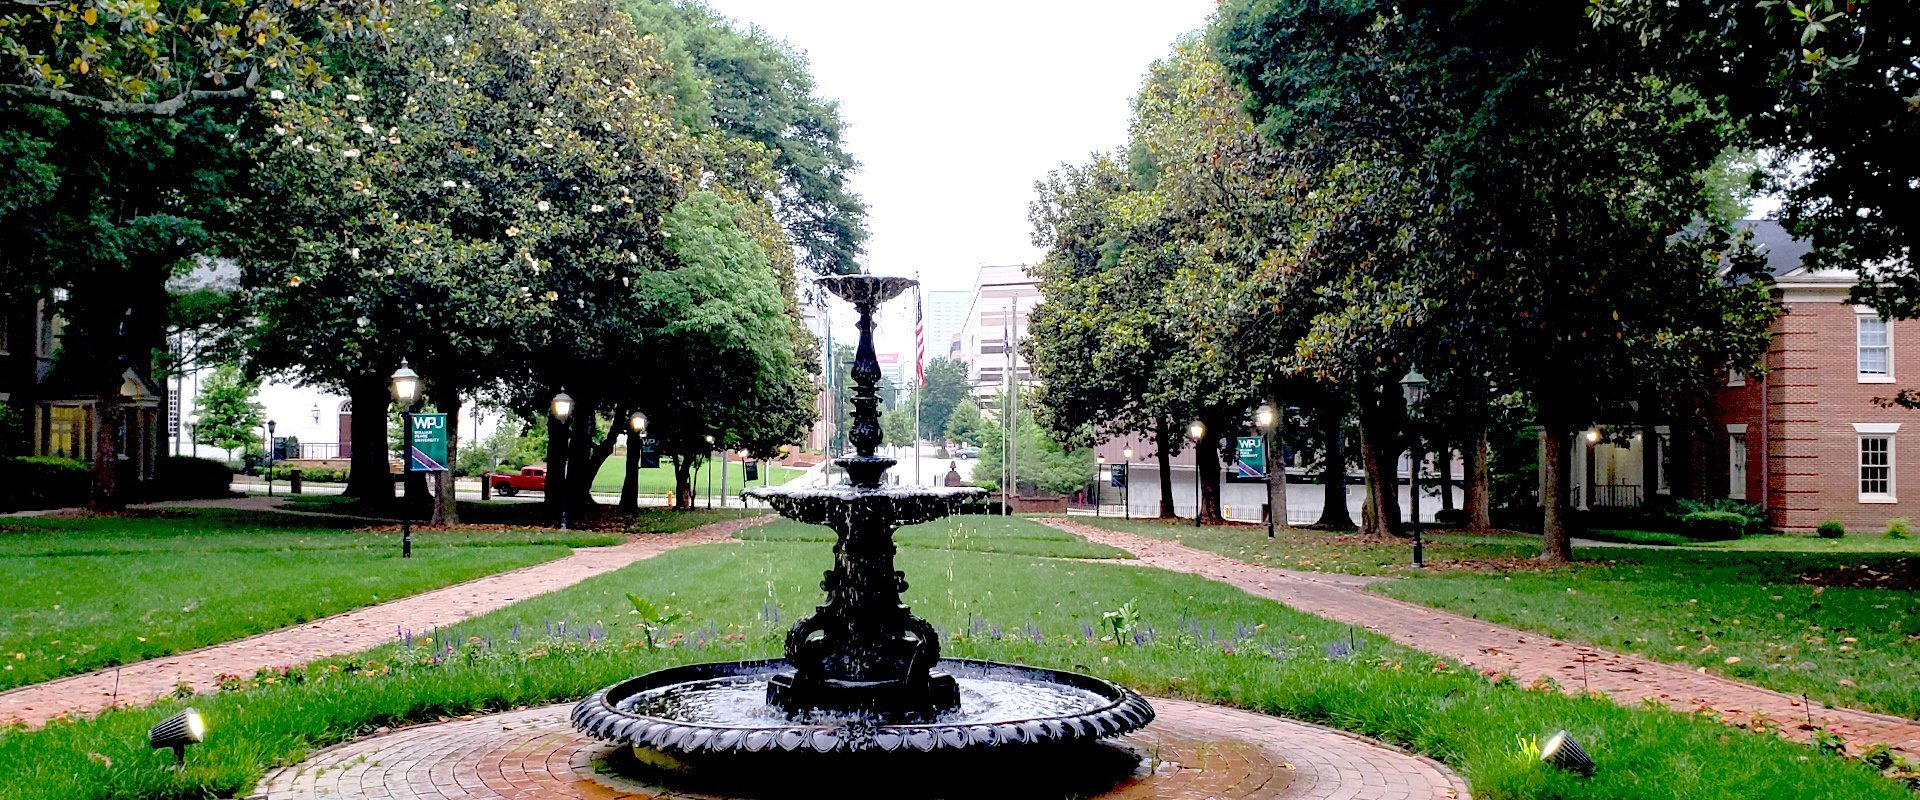 William Peace University Downtown Raleigh NC Historic Fountain - WPU Announces 98% Employment/Further Education for 2017 Graduates